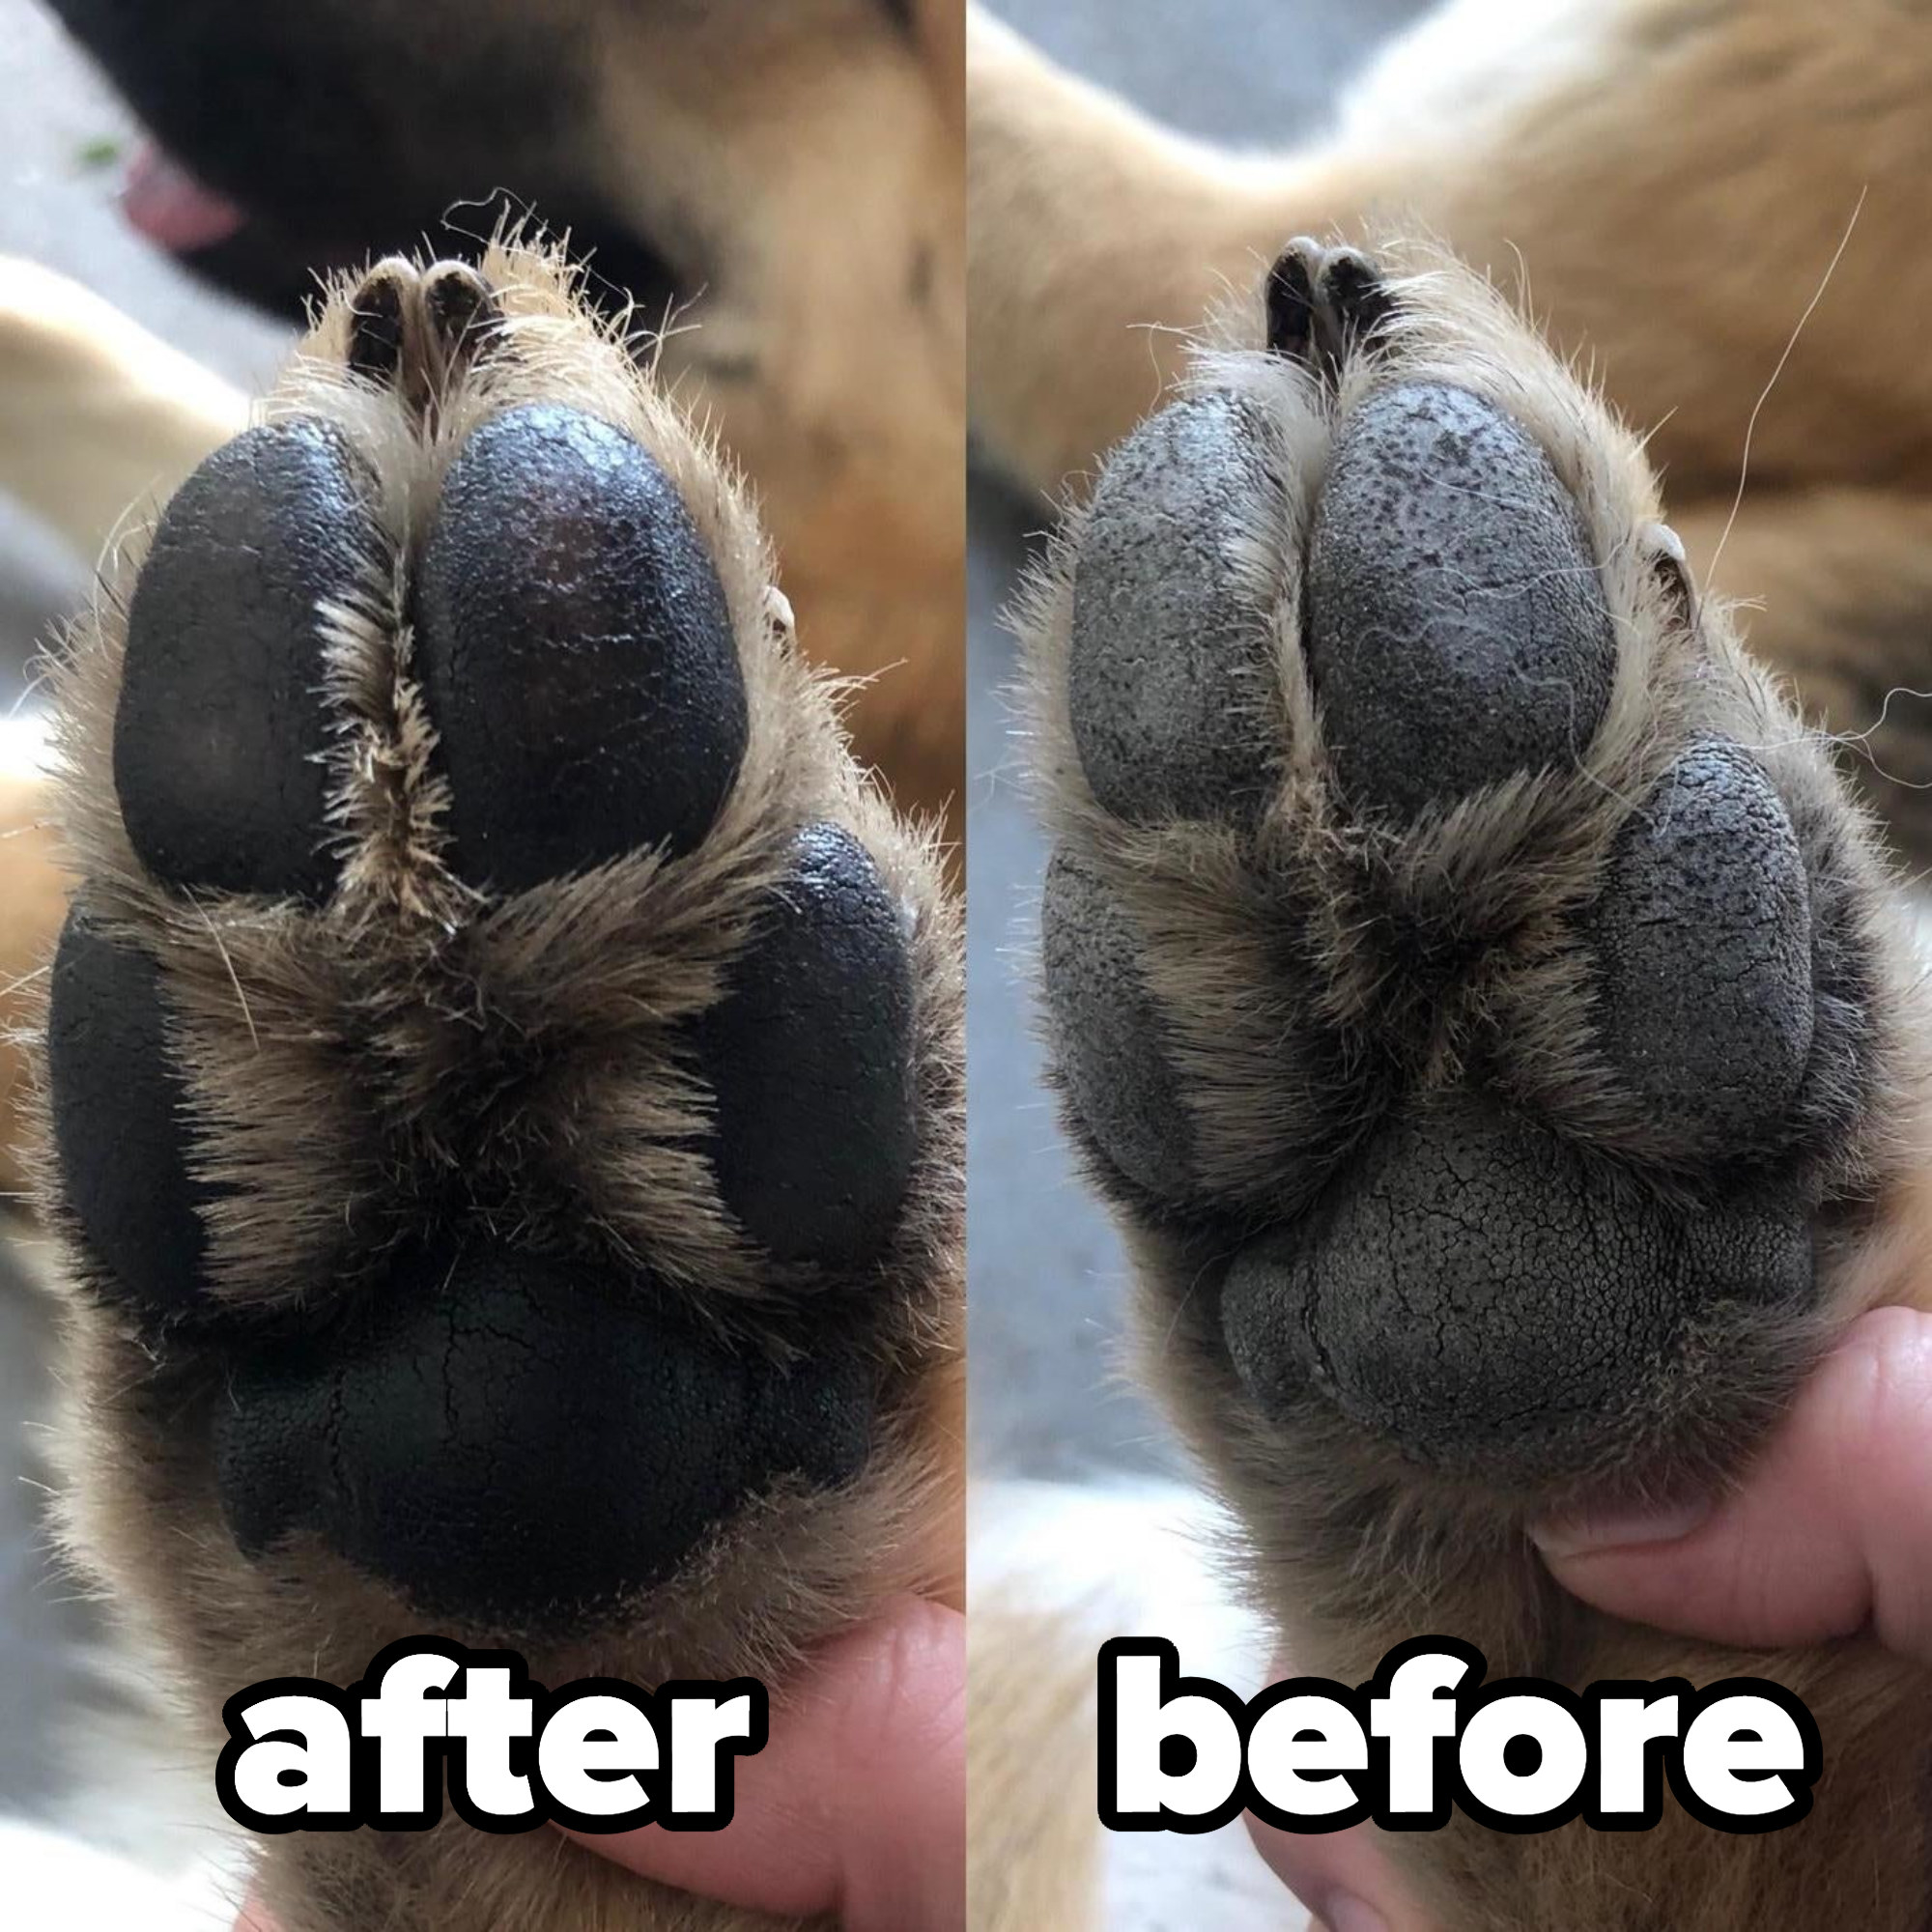 after image of a paw with musher's paw wax on and a before image of the same paw, but cracked and dry